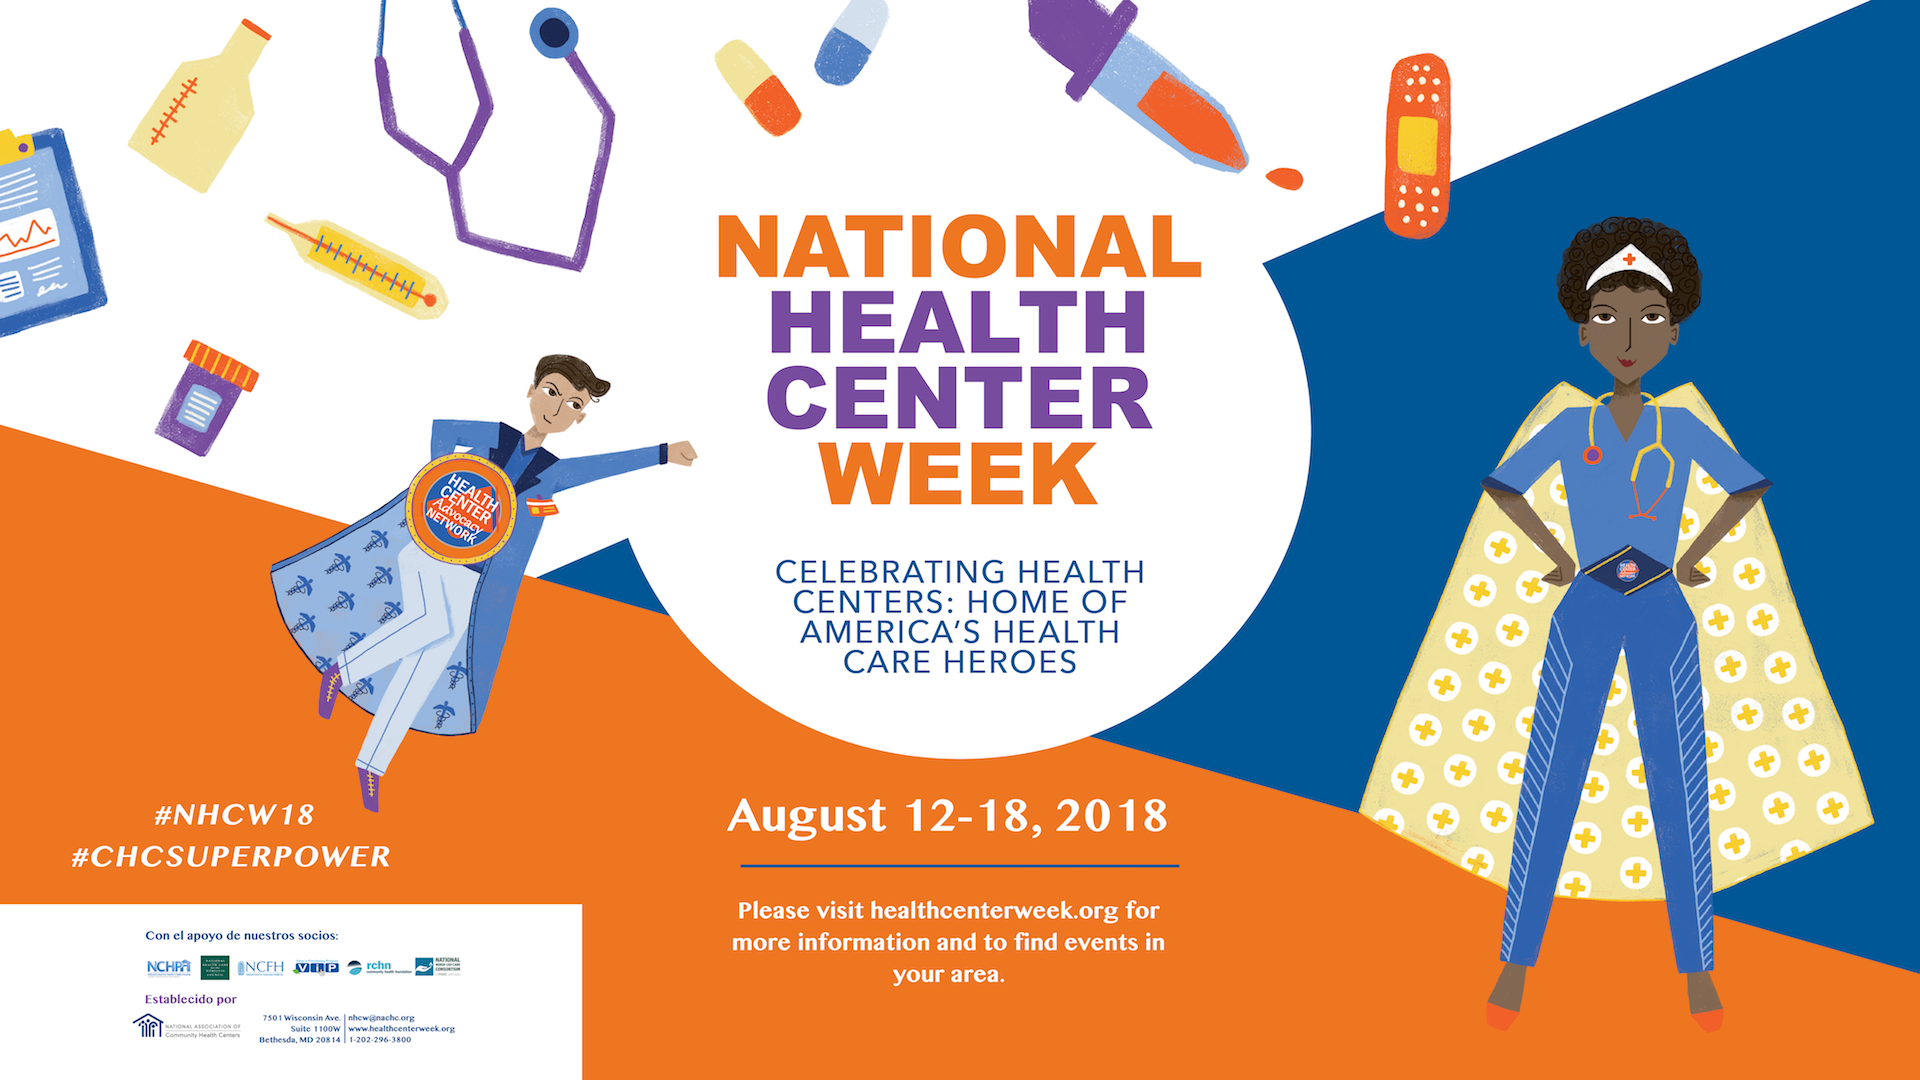 National Health Center Week August 12 - 18, 2018 | Lincoln